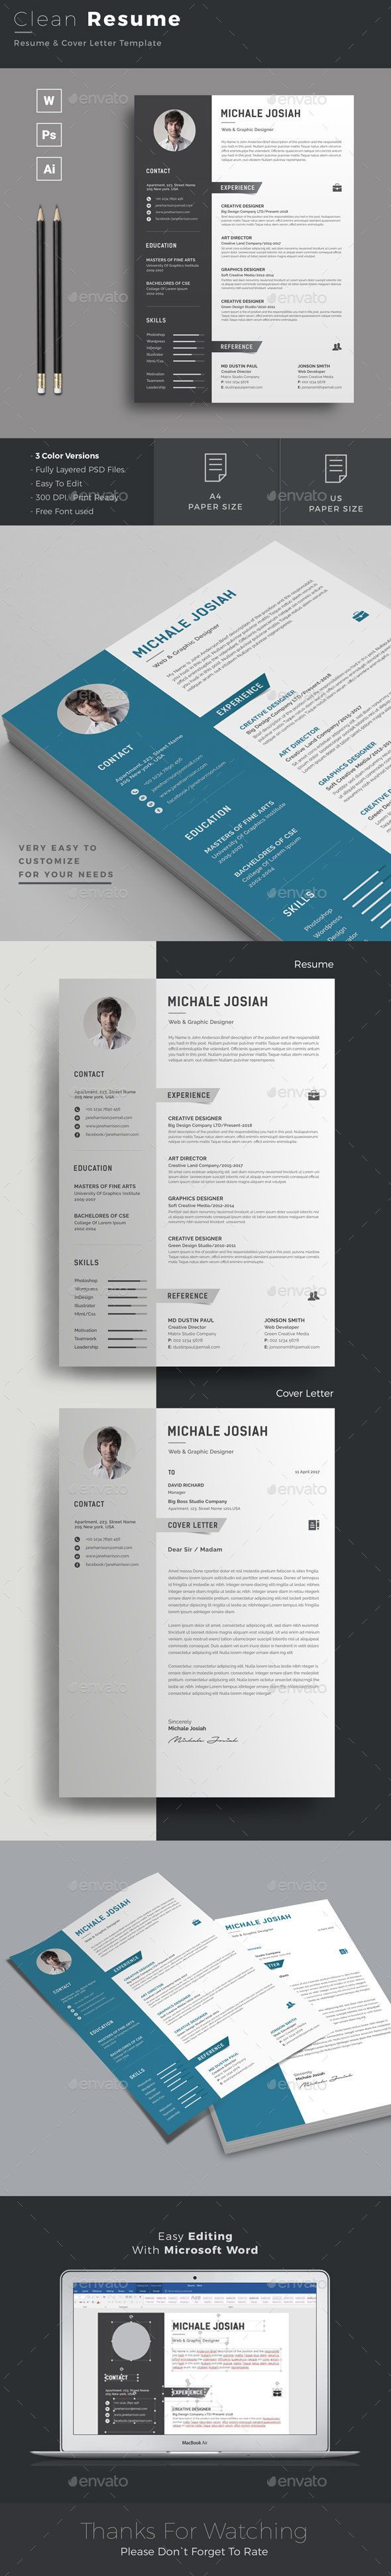 Resume 66 best images on Pinterest